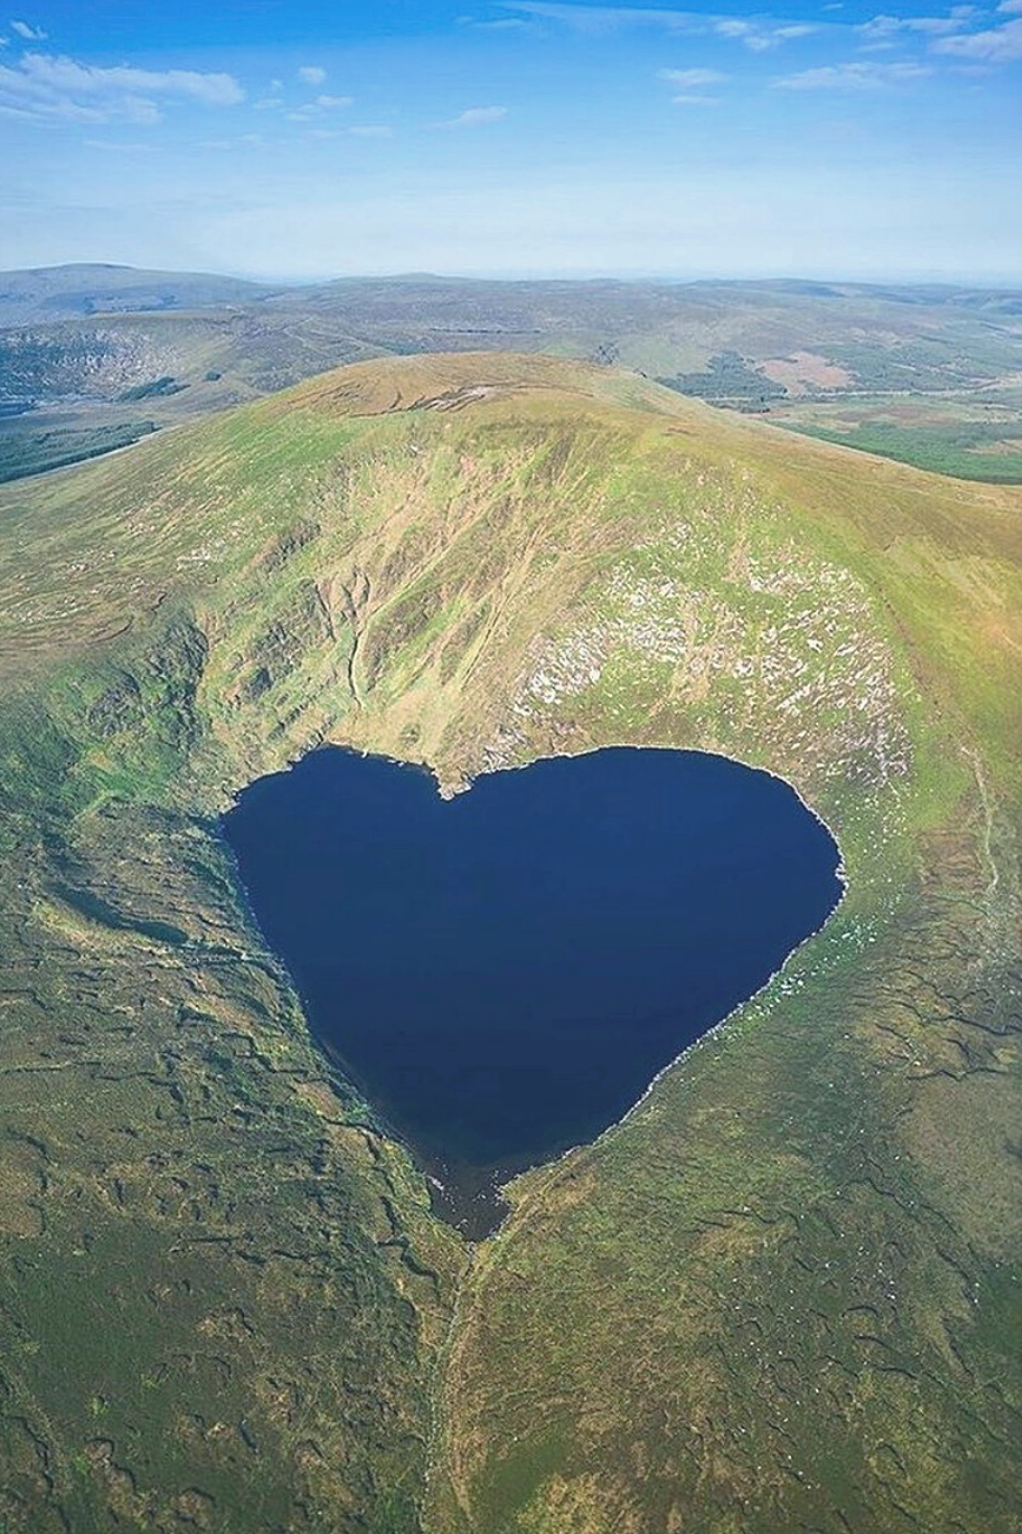 Lough Ouler At Wicklow Mountains In 2021 Ireland Tourism Visit Ireland Ireland Travel